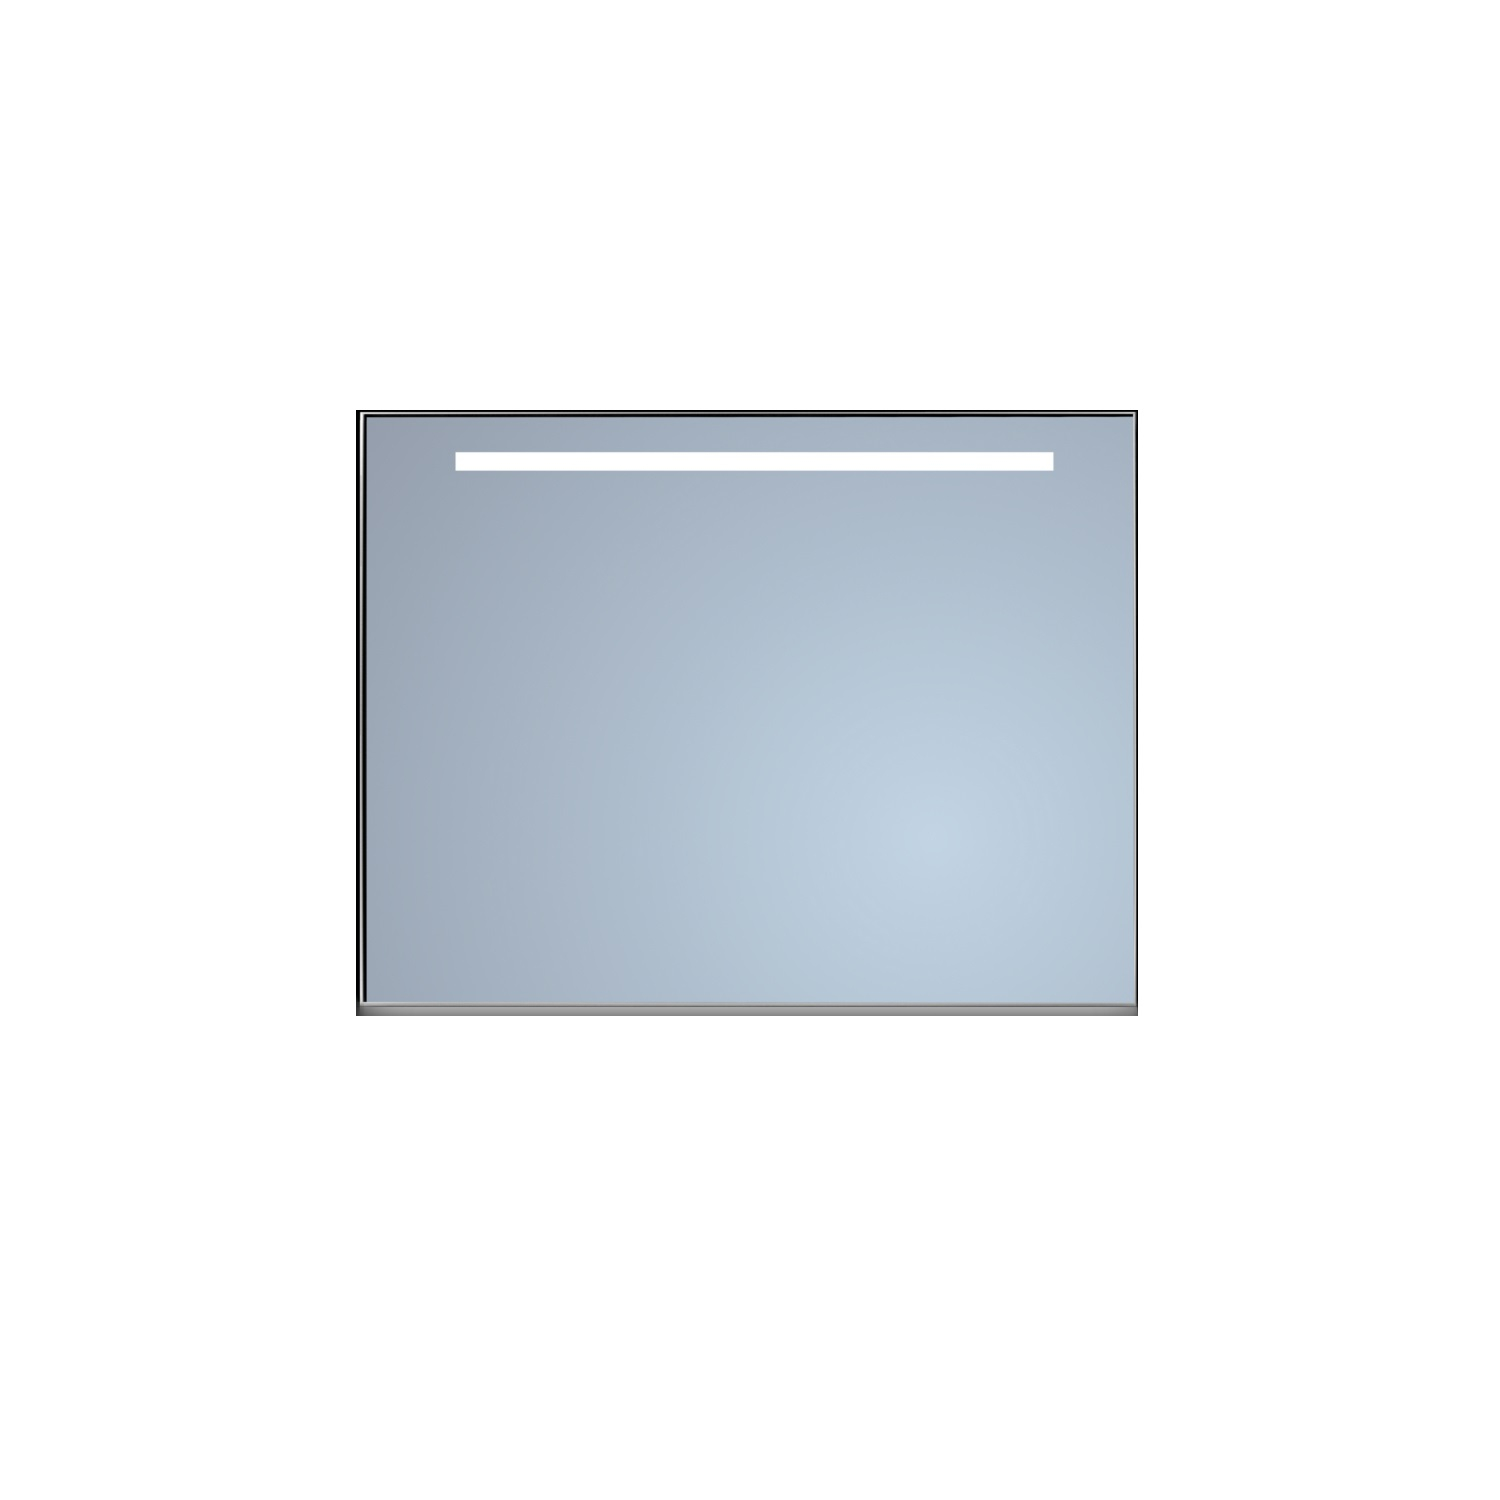 Badkamerspiegel Sanicare Q-Mirrors Ambiance en 'Cold White' LED-verlichting 70x100x3,5 Chroom Omlijsting